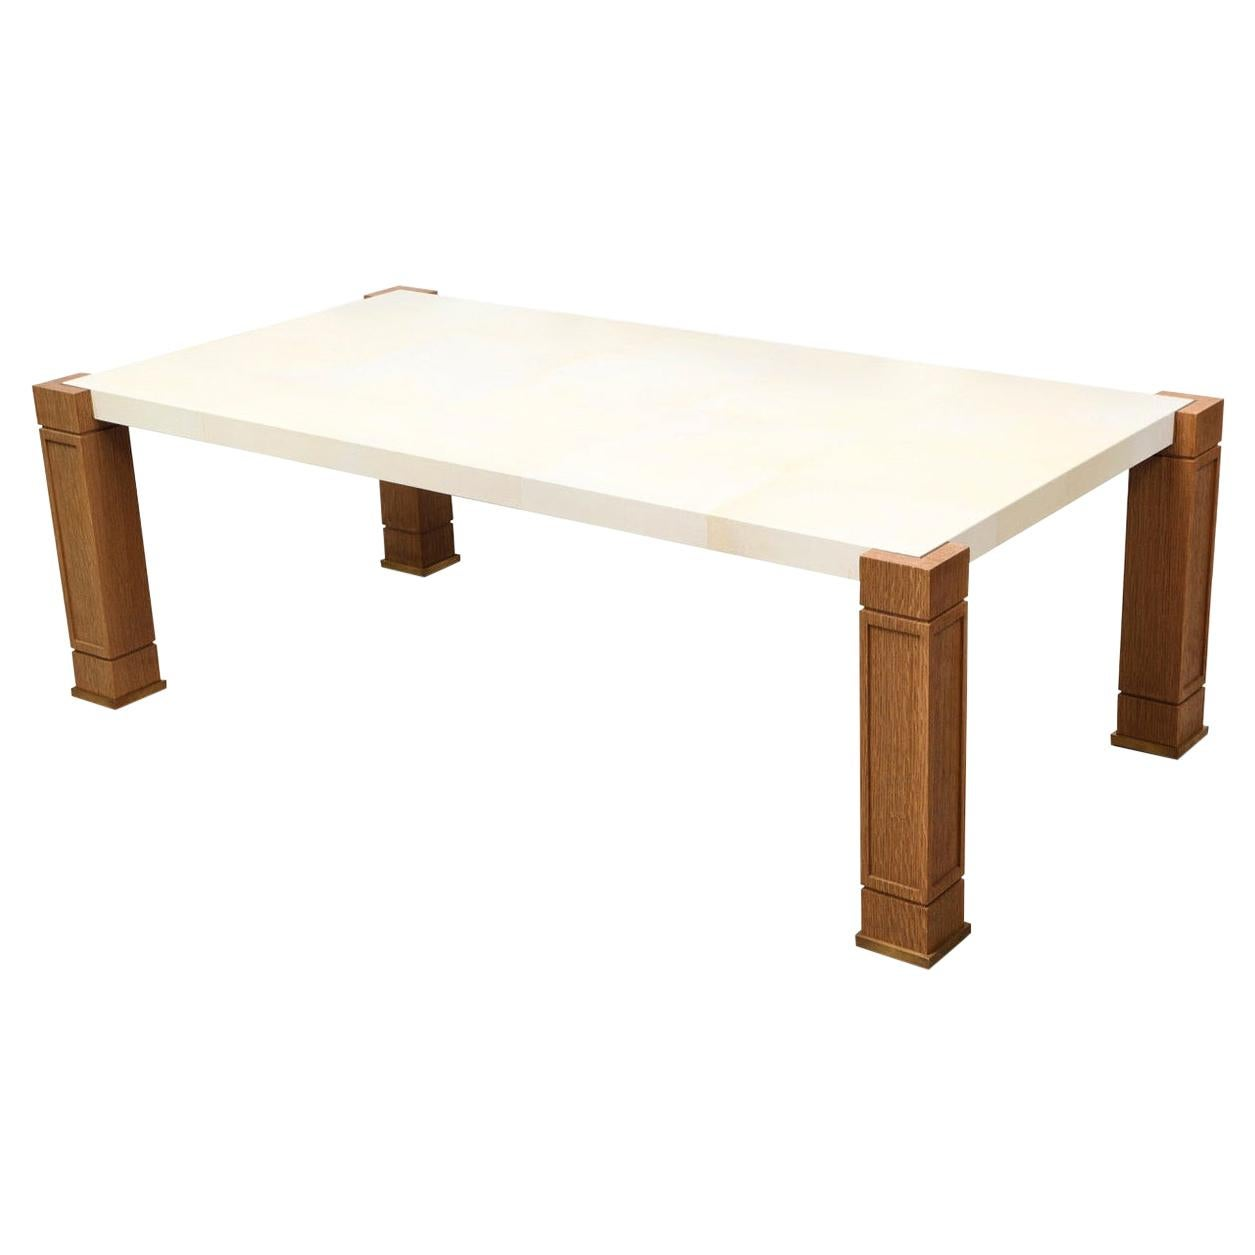 Custom Exquisite Parchment and Cerused Oak Coffee Table